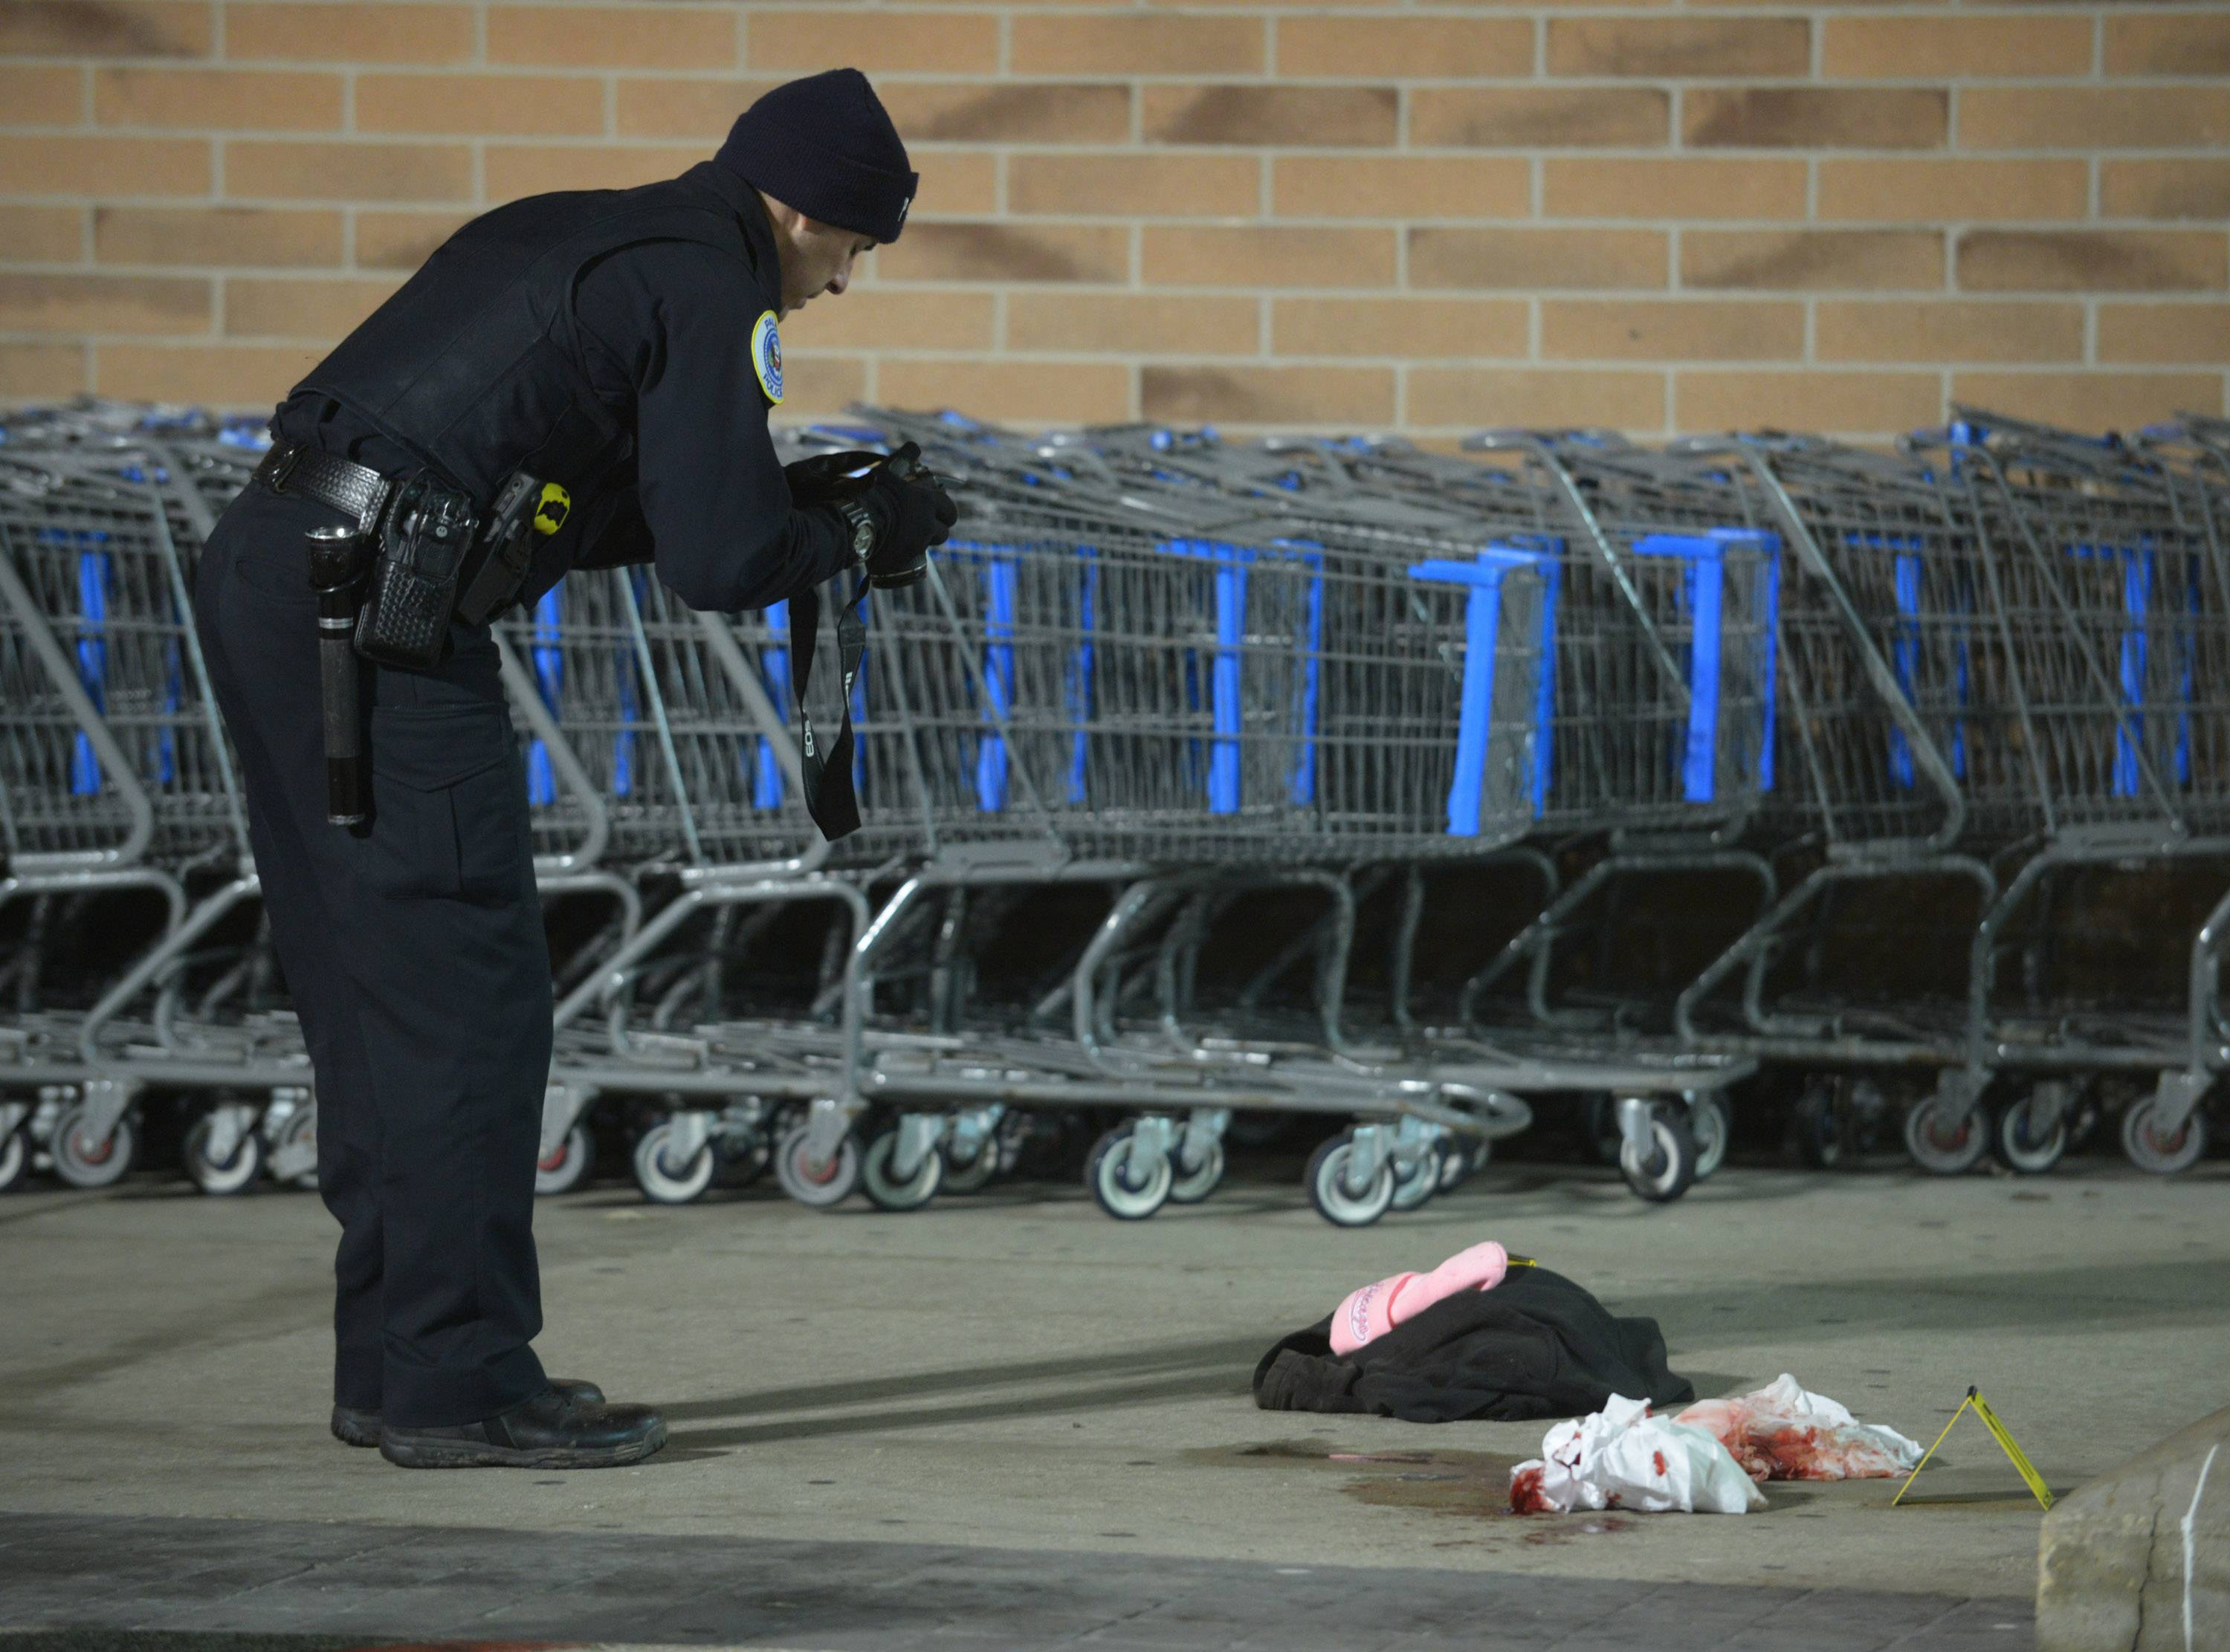 A Palatine police officer photographs crime scene evidence outside a store at 1555 N. Rand Road in Palatine on Feb. 7.